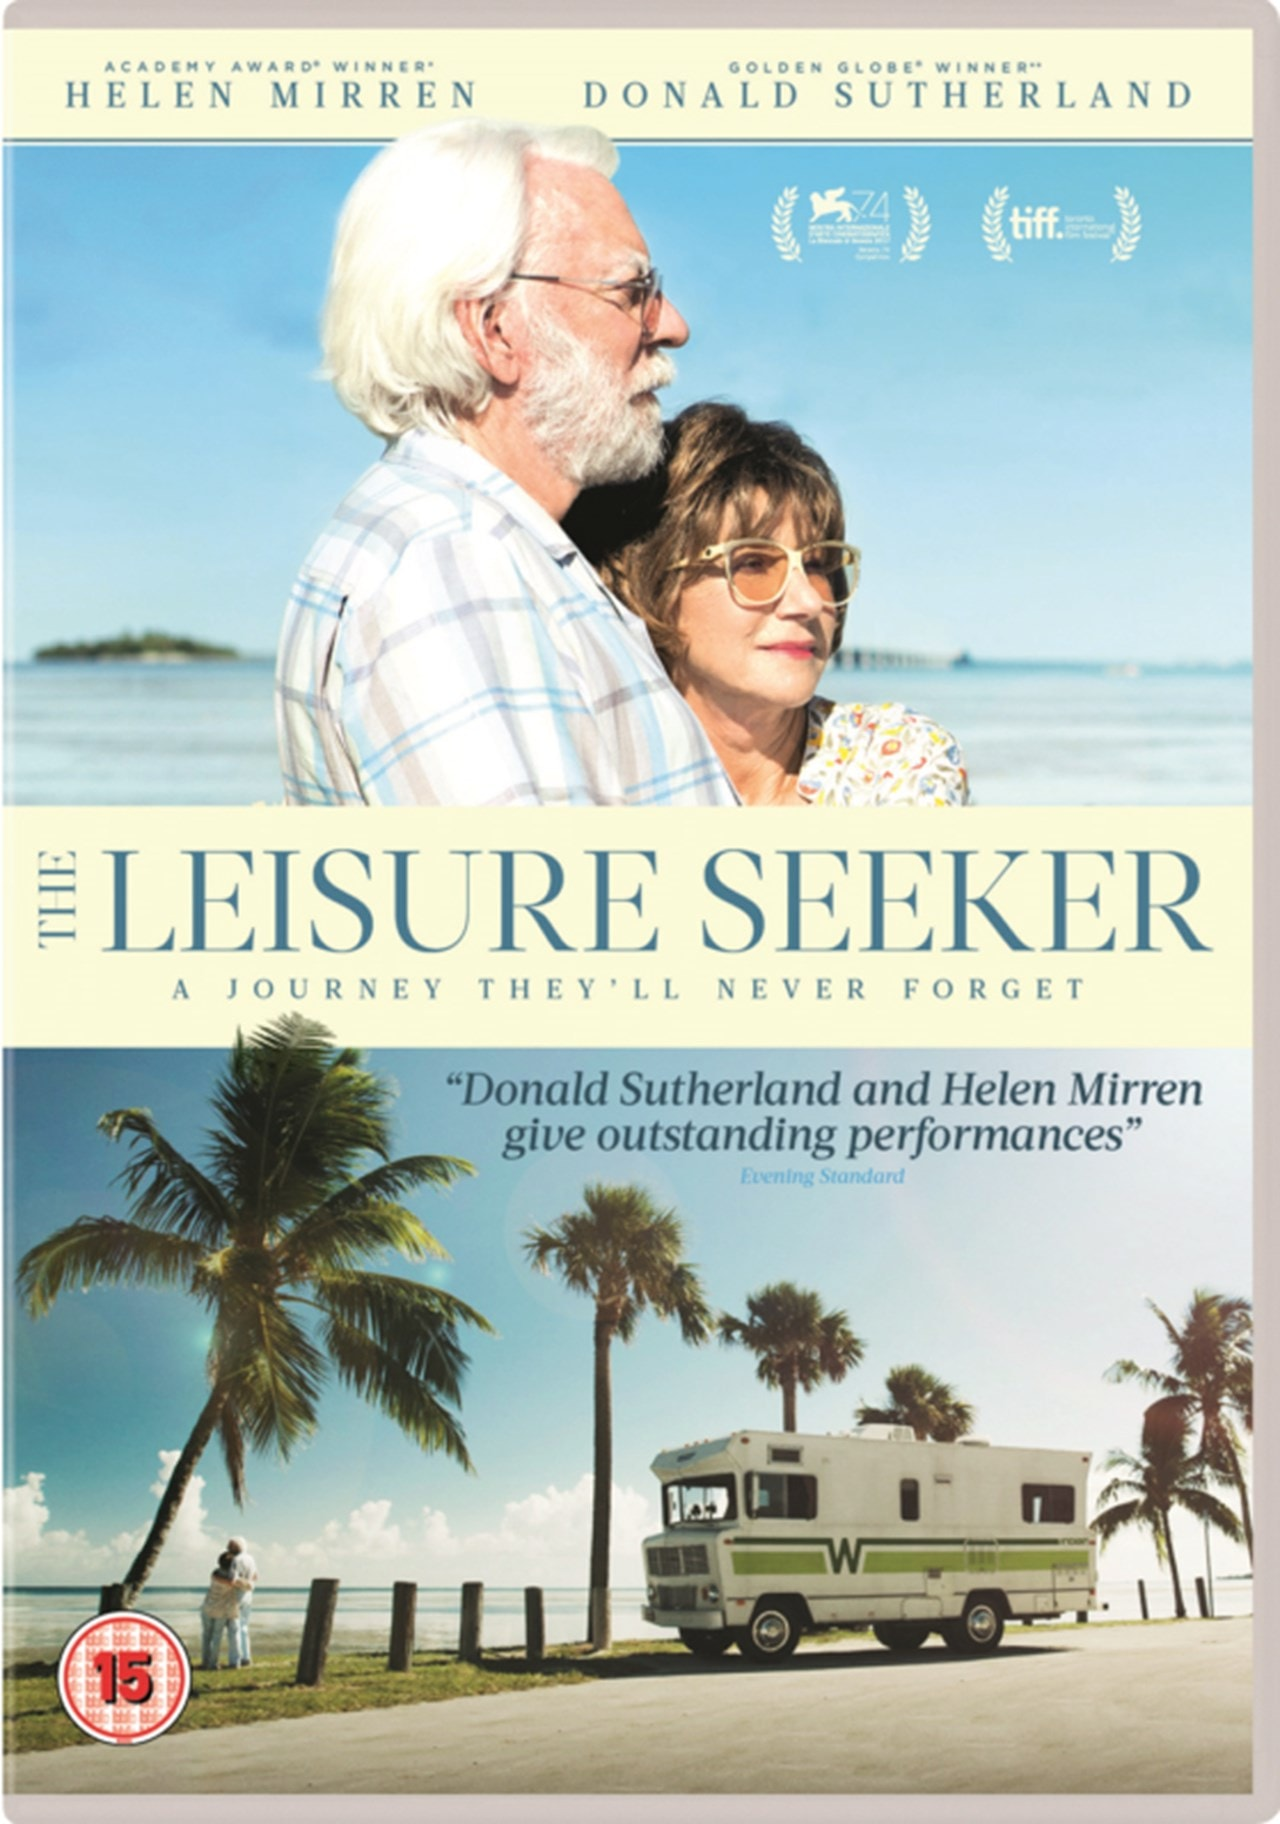 The Leisure Seeker - 1